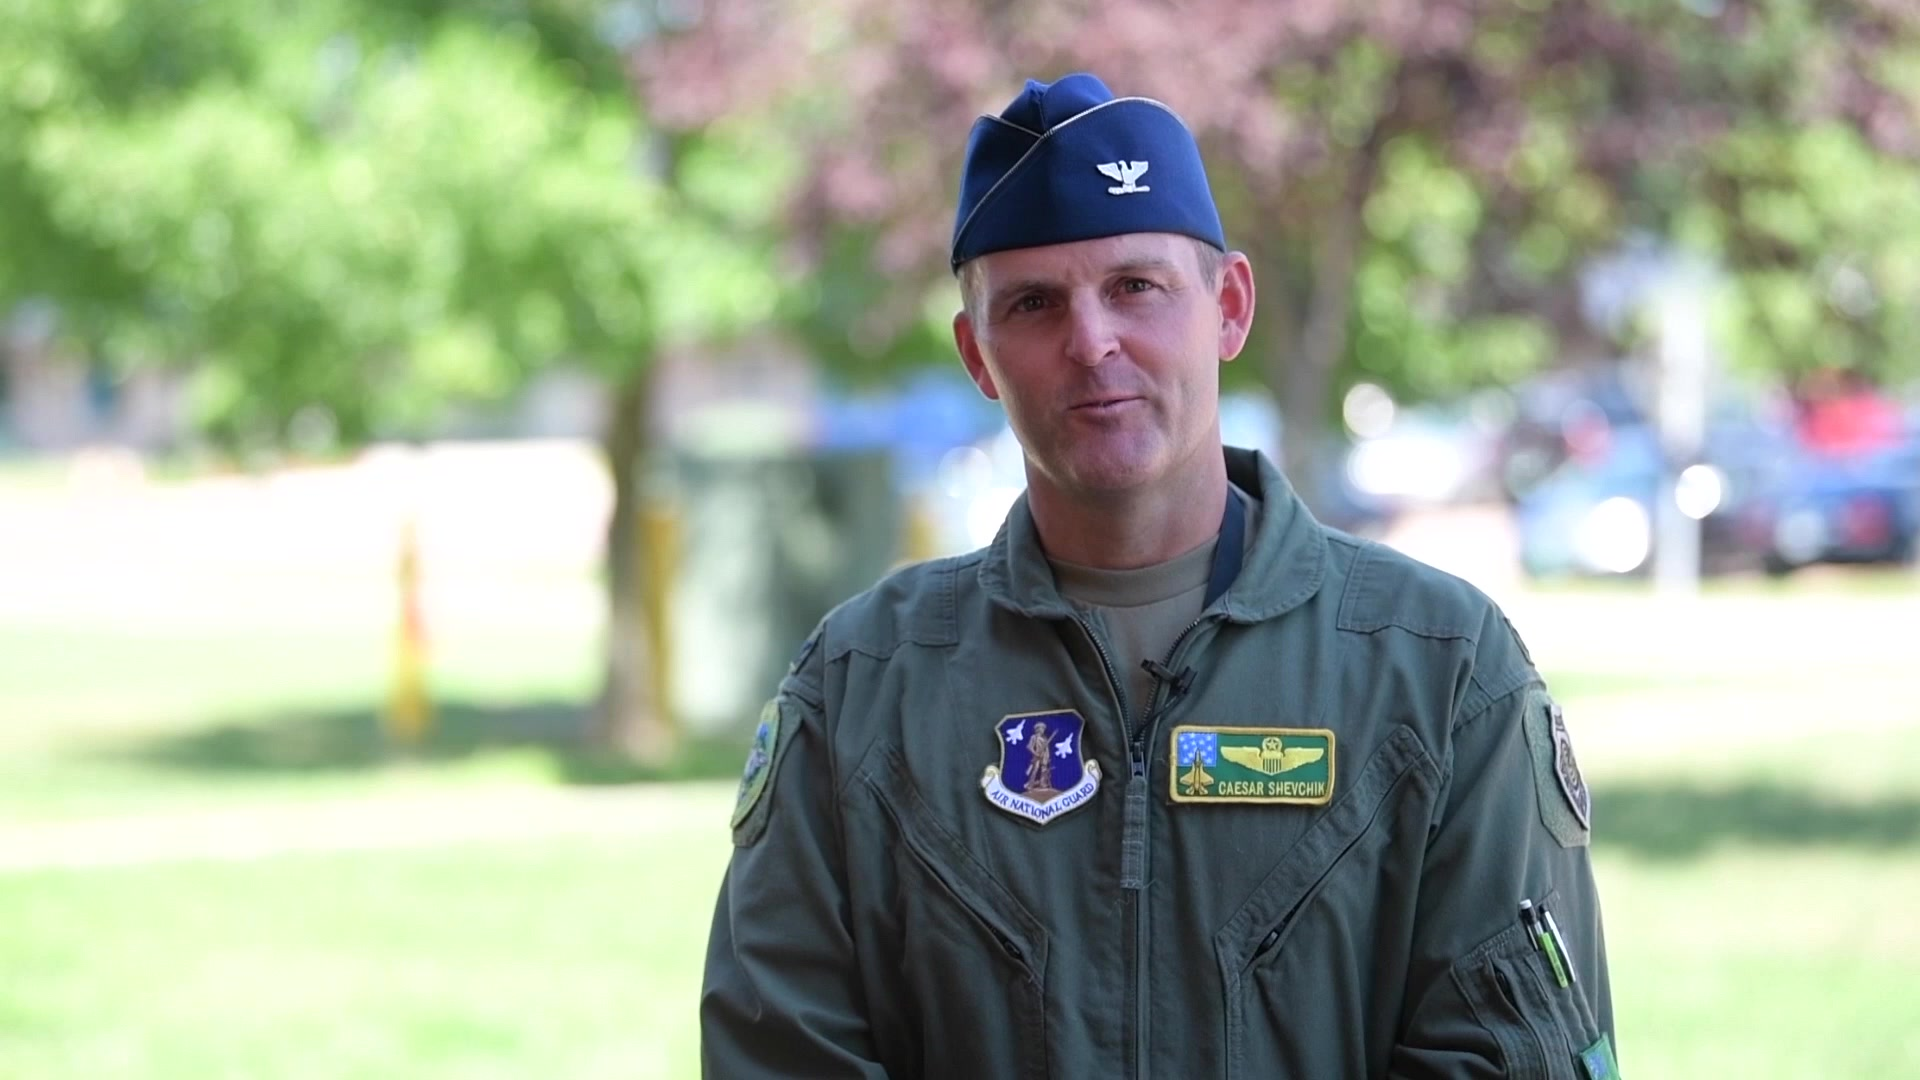 With the Vermont Air National Guard staying staying focused in both Wisconsin and Vermont, check out a glimpse of what they have been up to so far this August.